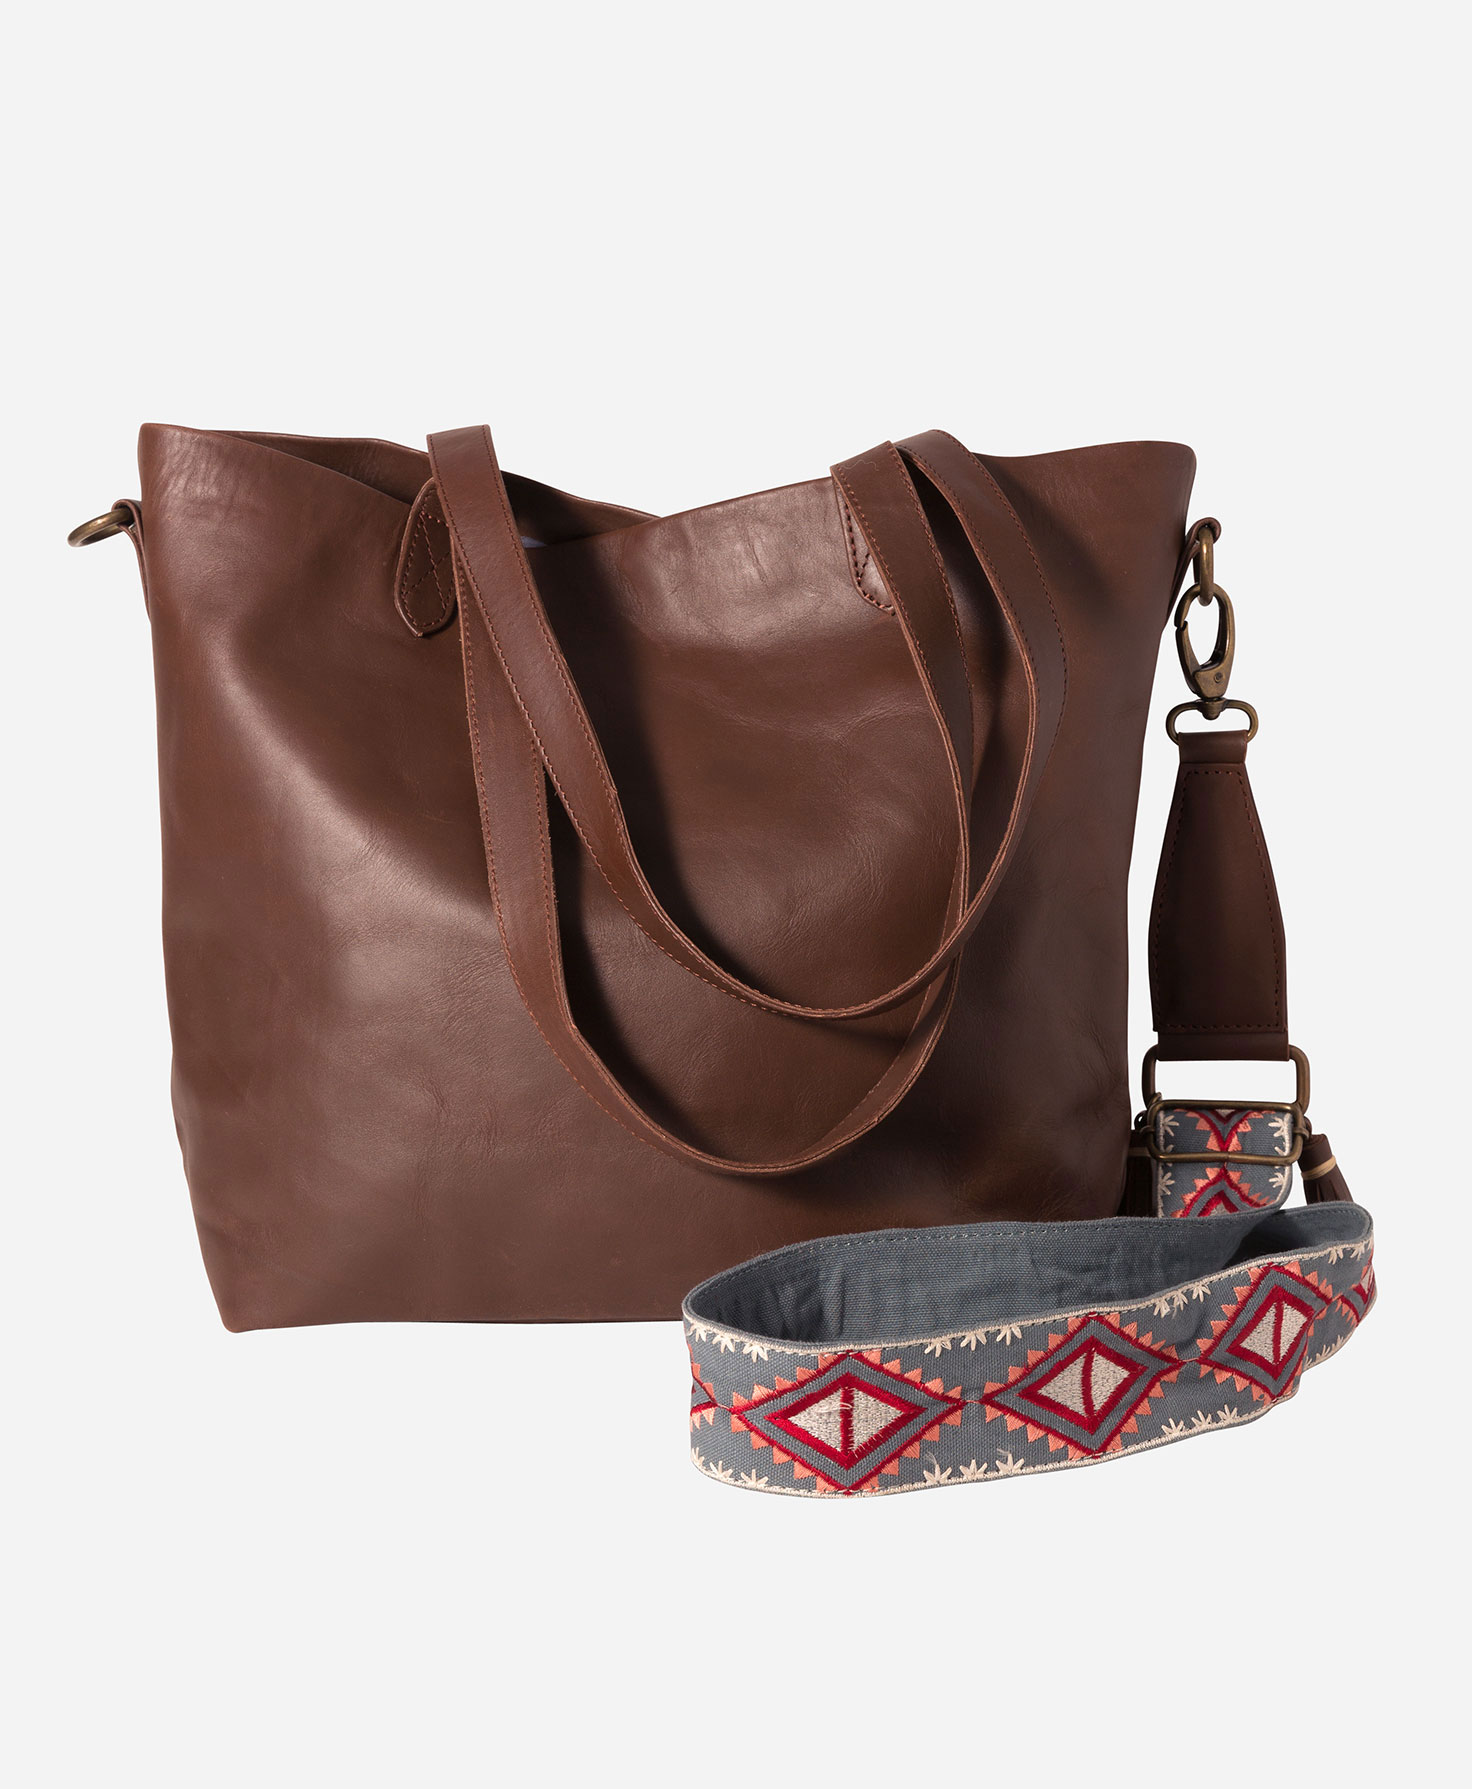 travel gift guide jetsetter convertible bag from noonday collection